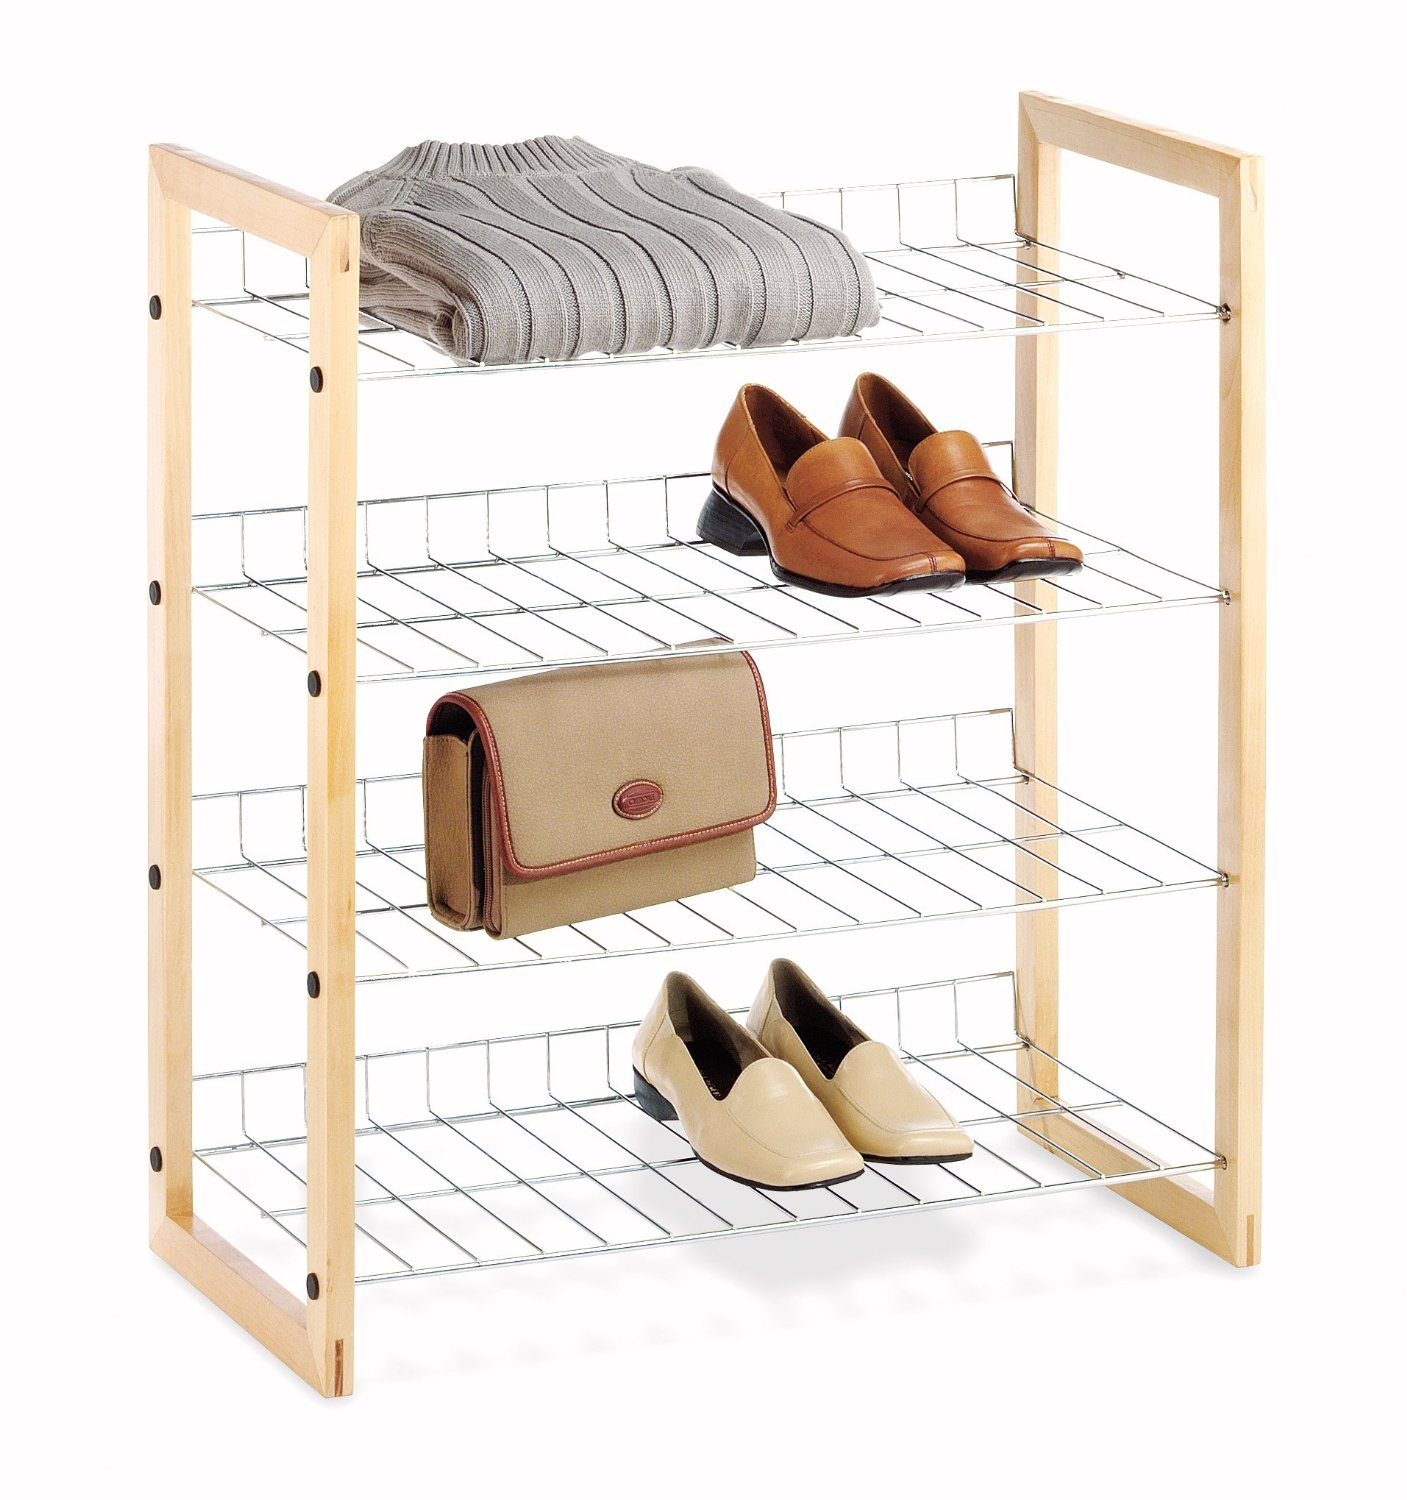 4 Tier Closet Wire Shelving with Natural Wood Frame